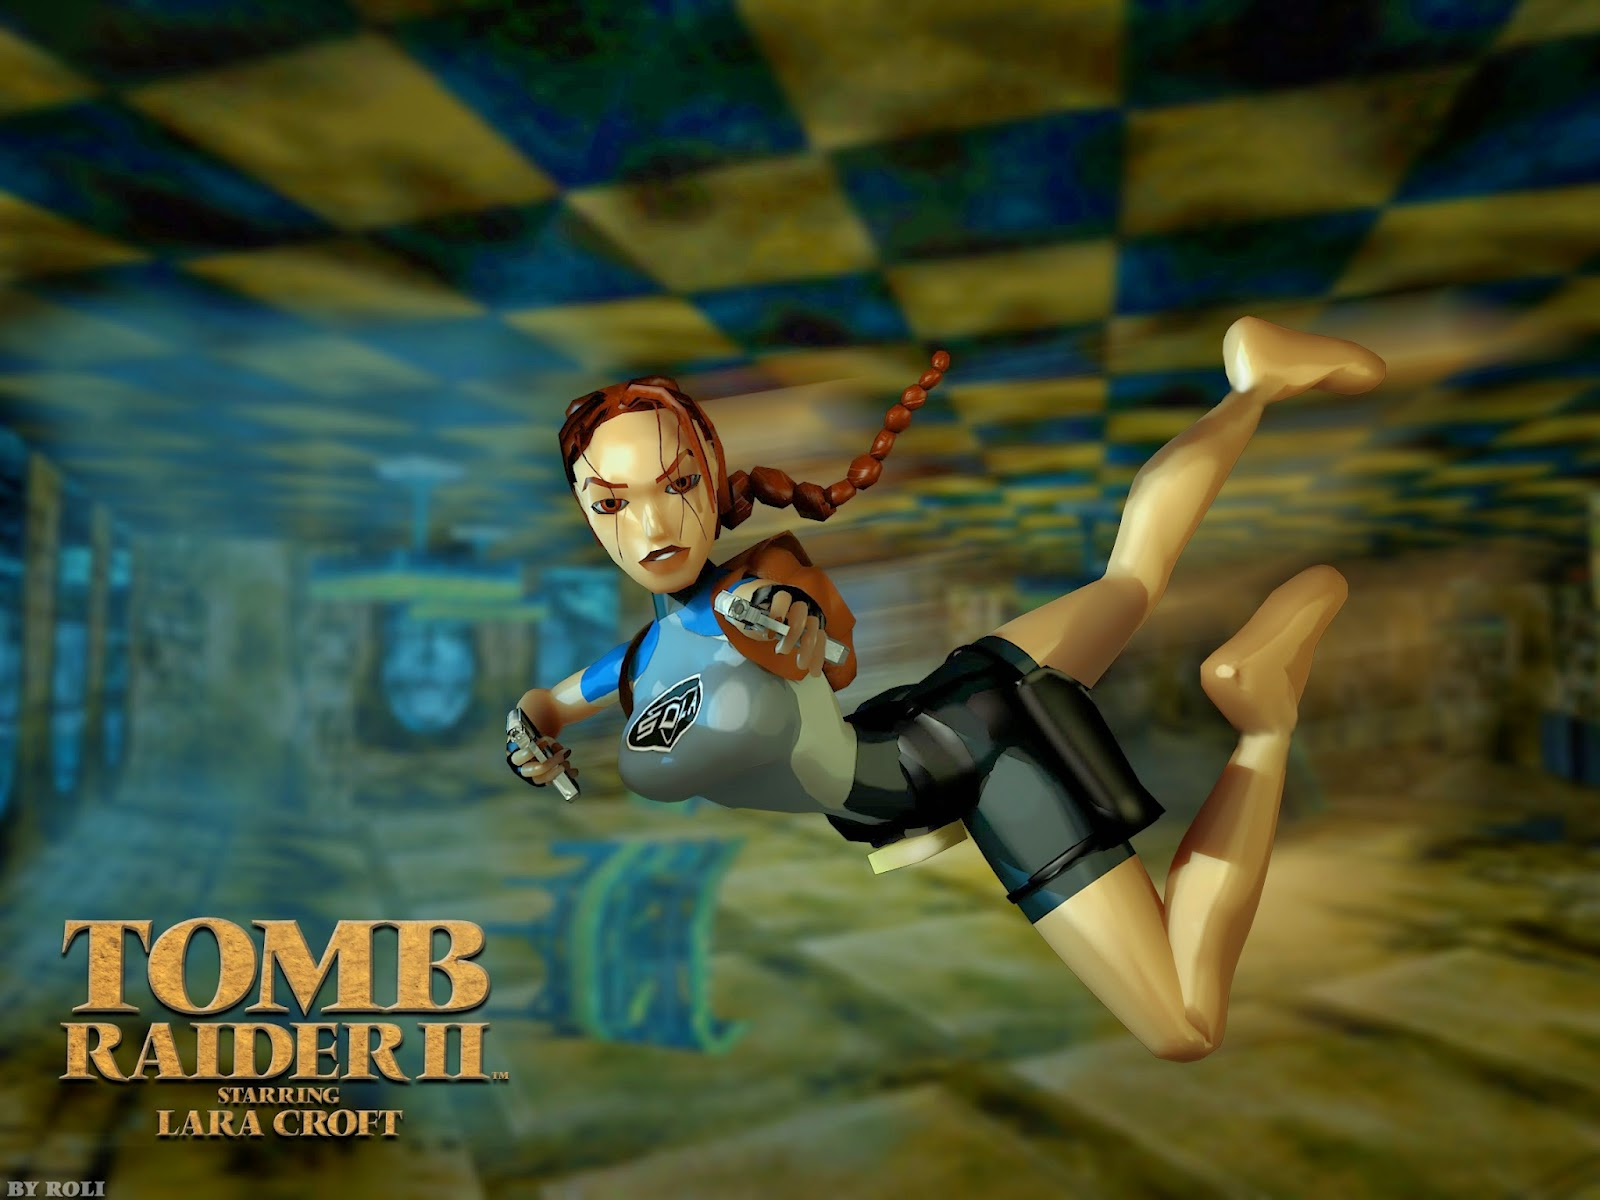 play tomb raider 1 online free no download